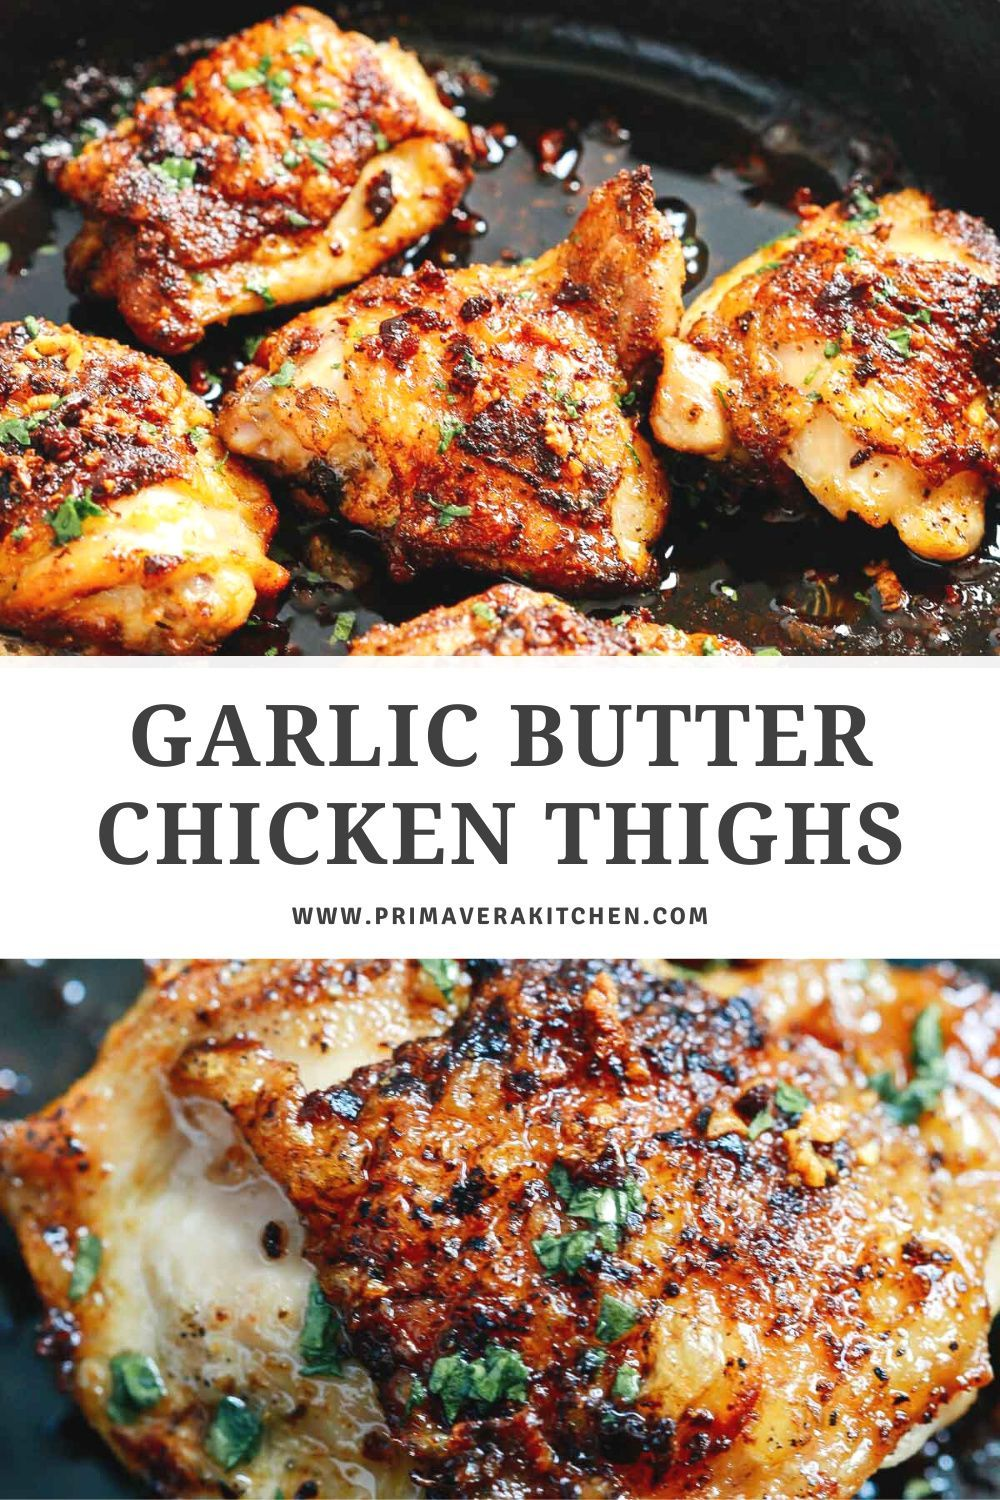 Garlic Butter Chicken Thighs Very Easy To Make And So Good Grilled Chicken Recipes Chicken Thigh Recipes Baked Chicken Dinner Recipes